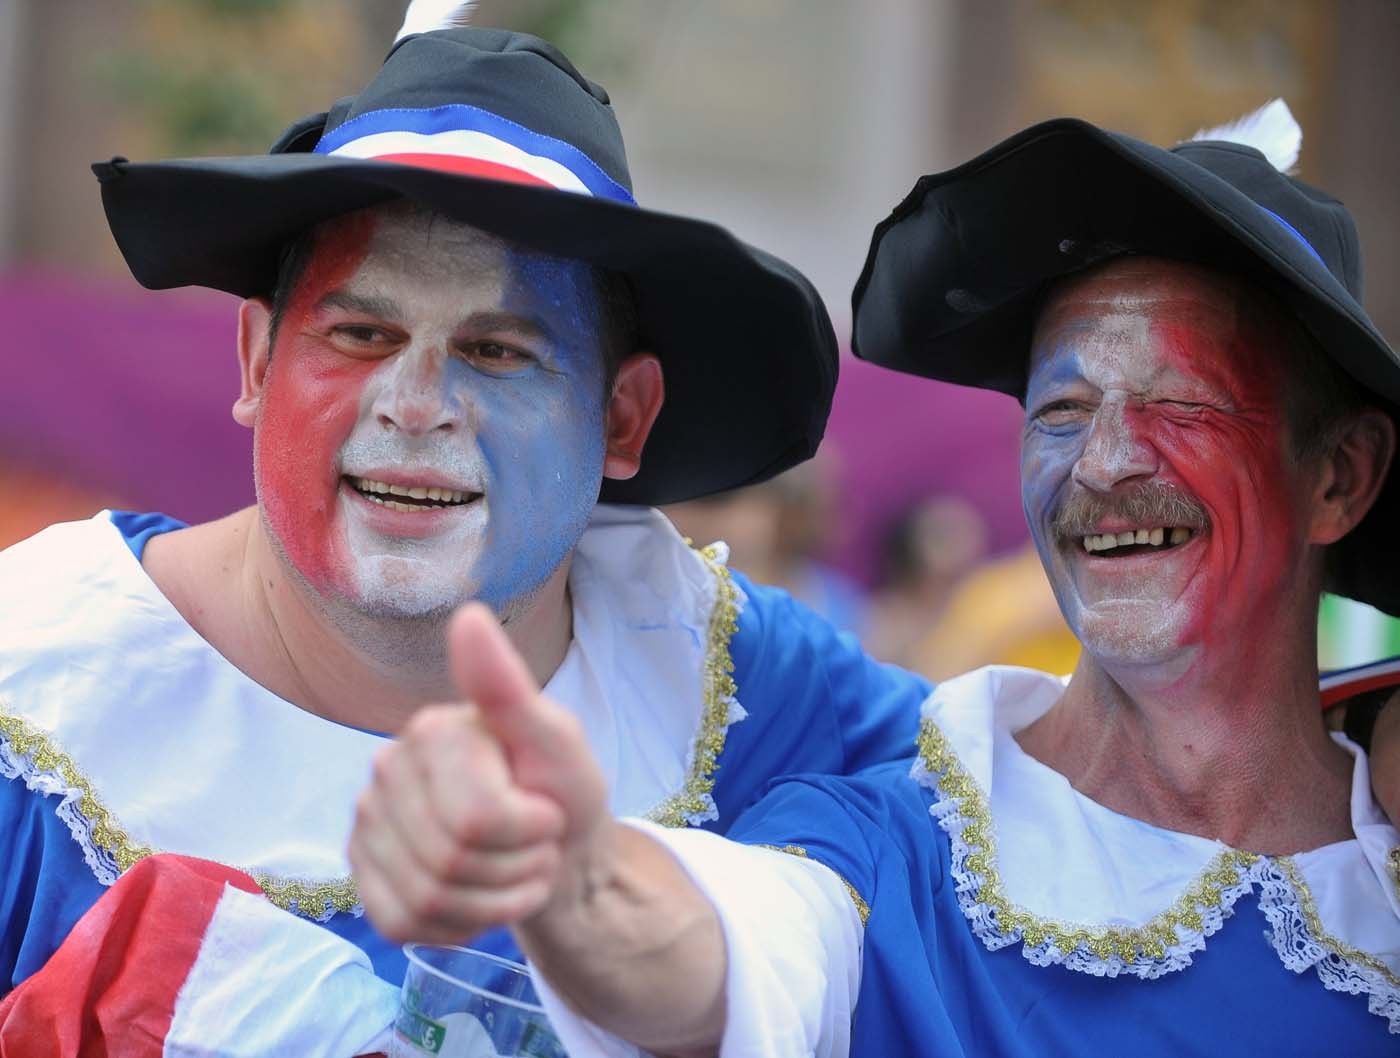 France supporters pose on June 19, 2012 at the fanzone in Kiev, ahead of the Euro 2012 football championships match Sweden vs. France. (Genya Savilovgenya/AFP/Getty Images)